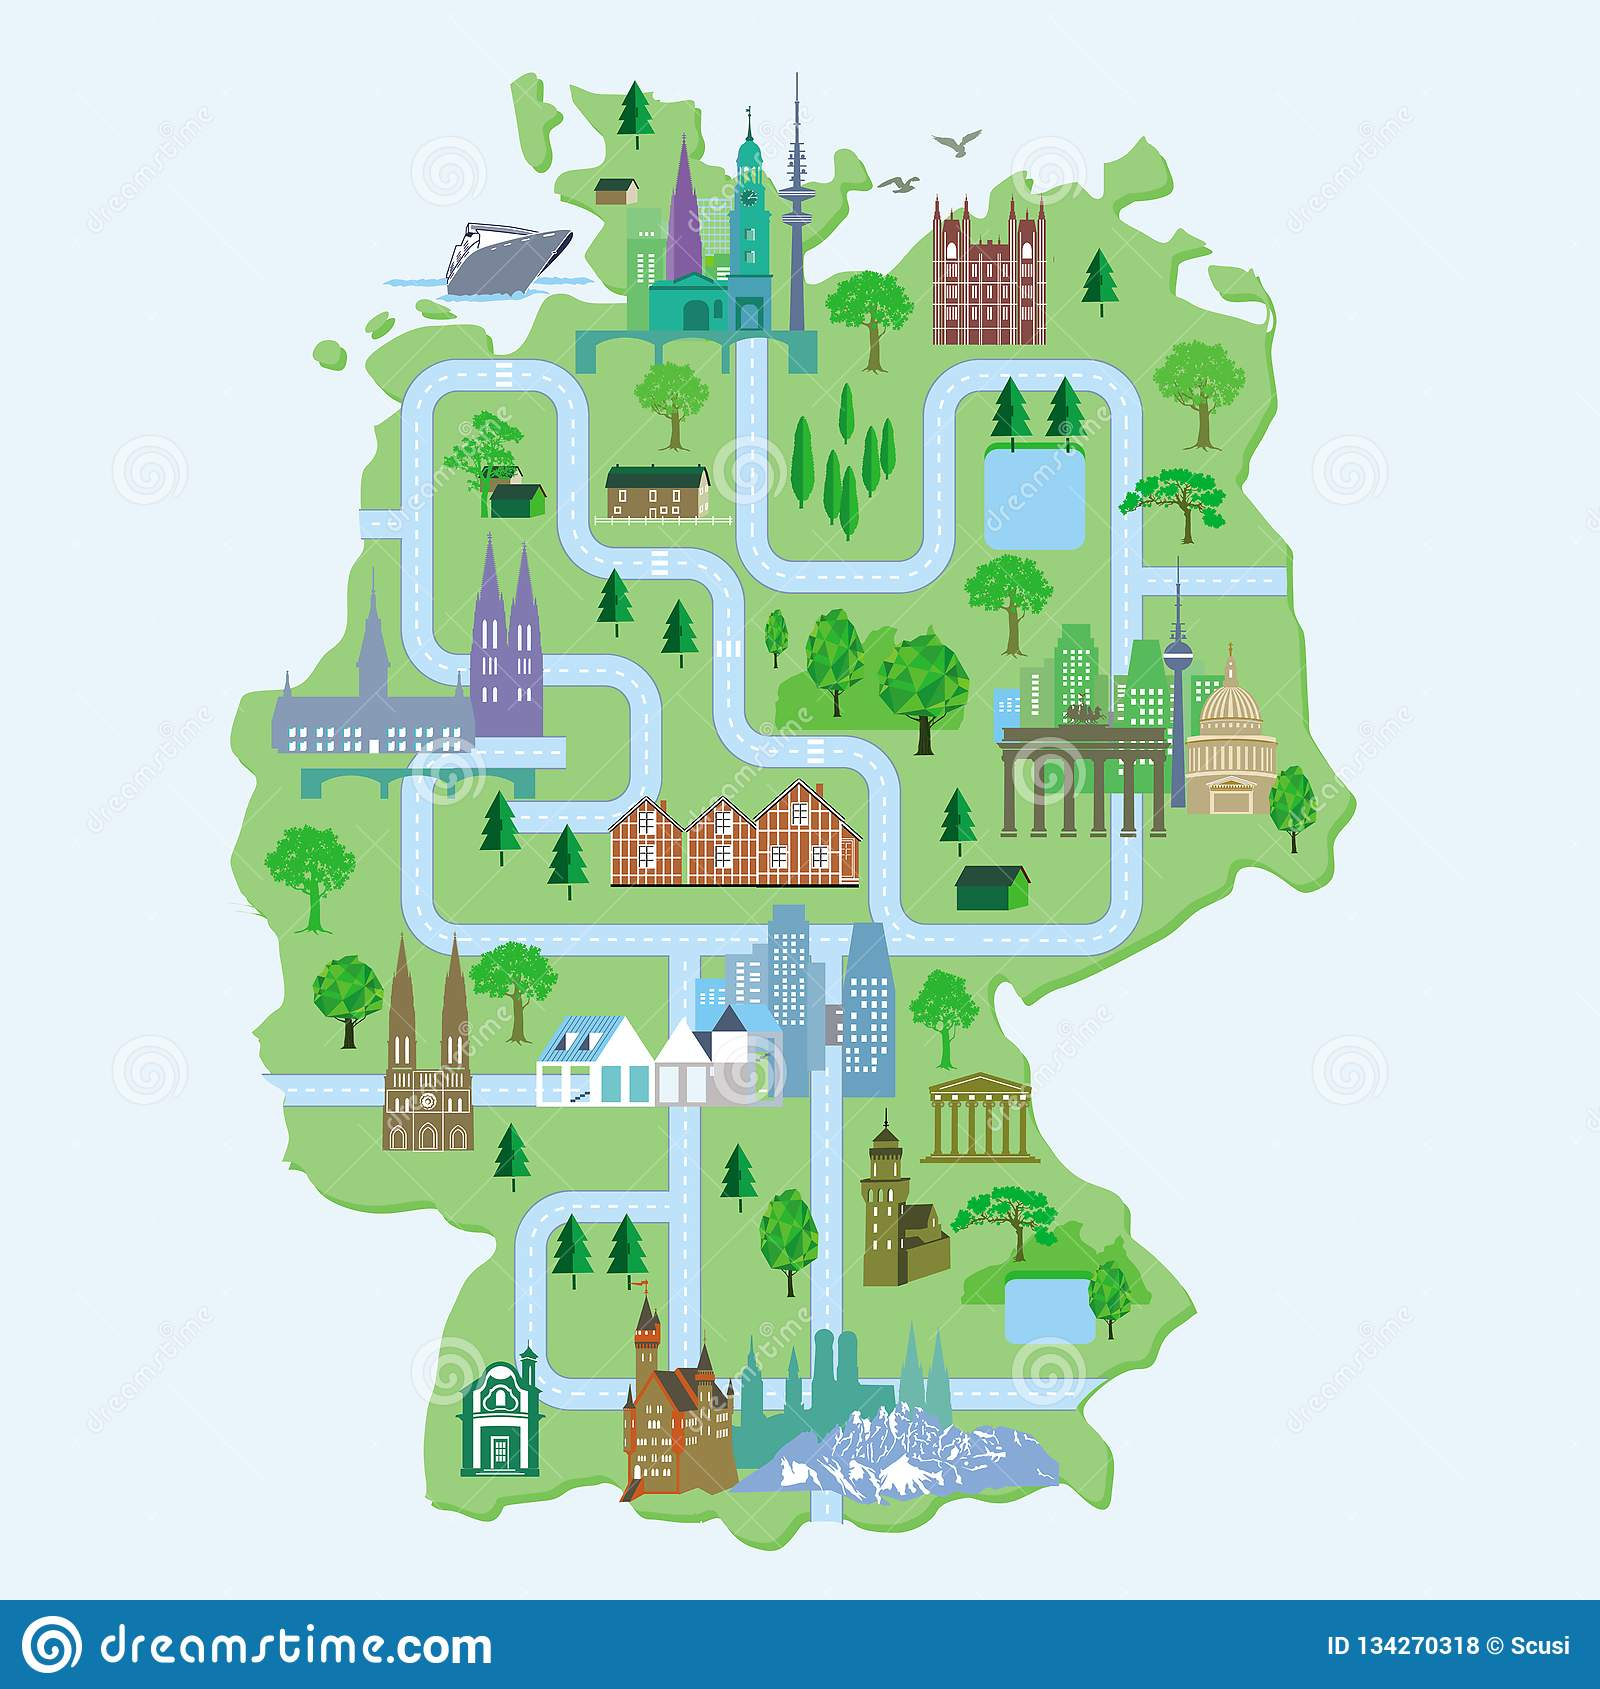 Map Of Cities In Germany.Germany Map With Cities Stock Illustration Illustration Of Church